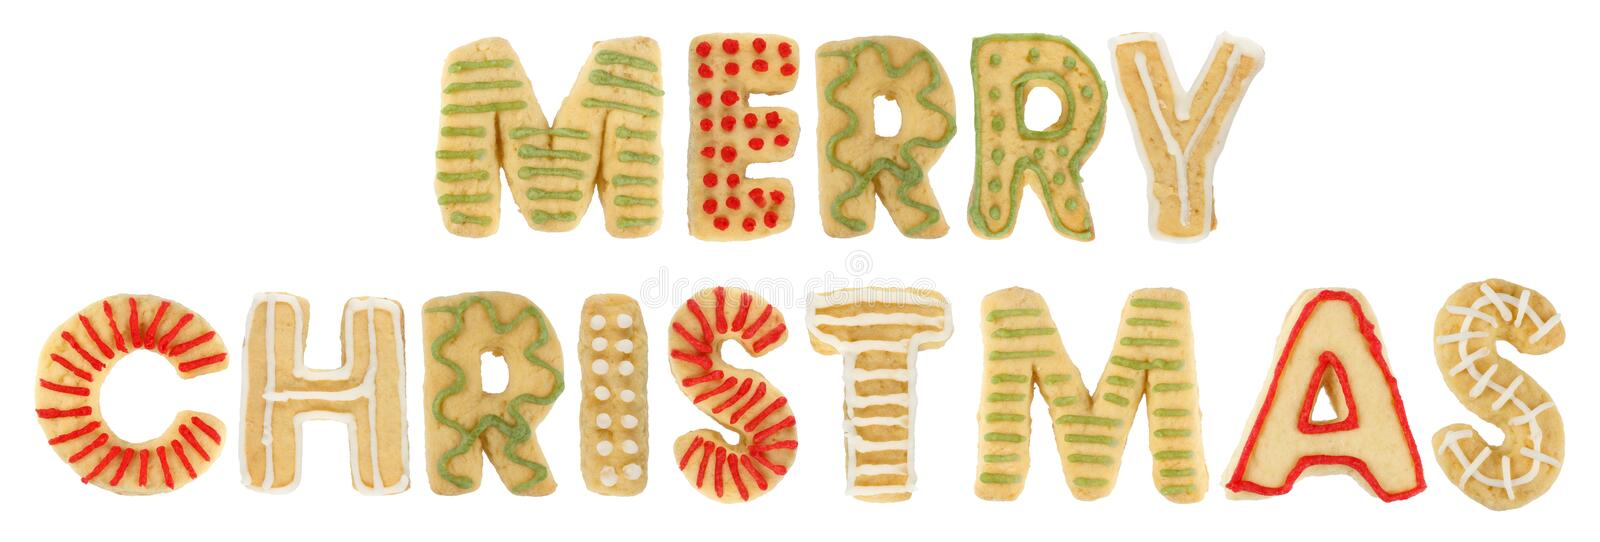 Merry Christmas made of cookies. Merry Christmas script made of homemade decorated cookies royalty free stock photos